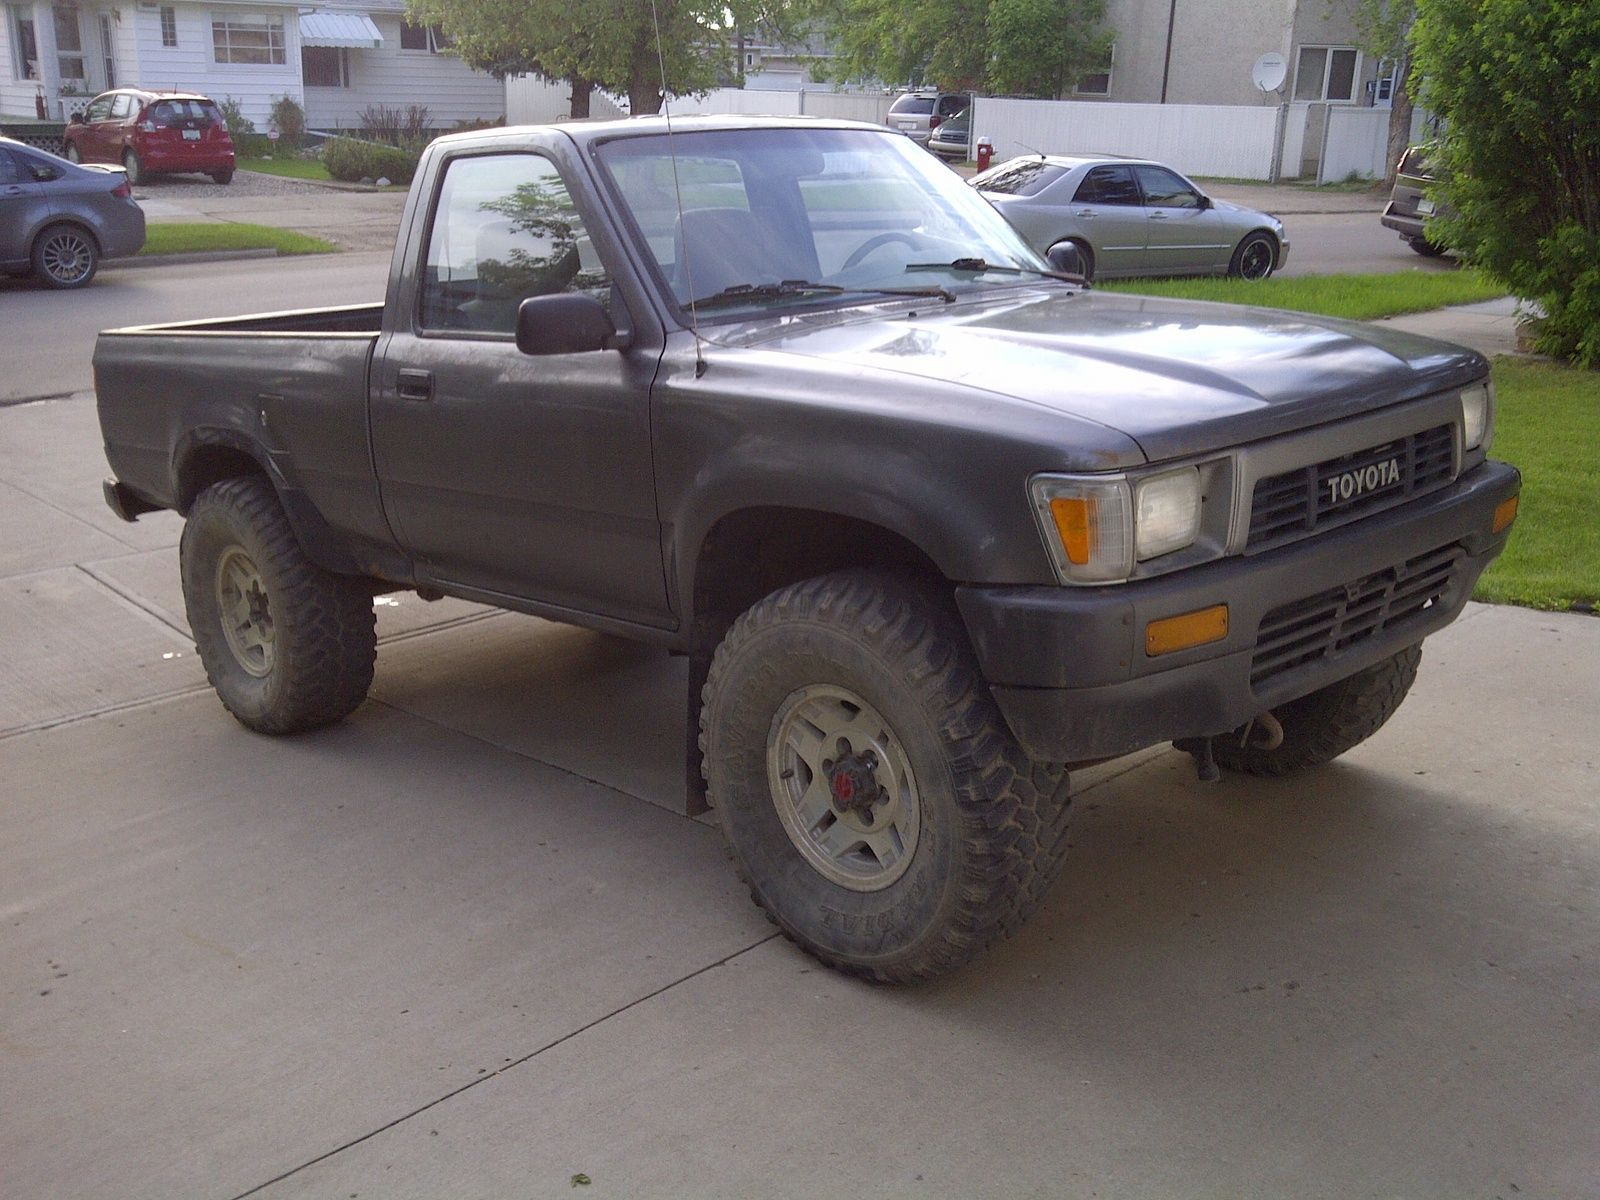 1989 toyota pickup flat black bumper and grille work is a nice touch toyota fun pinterest toyota toyota 4x4 and toyota trucks